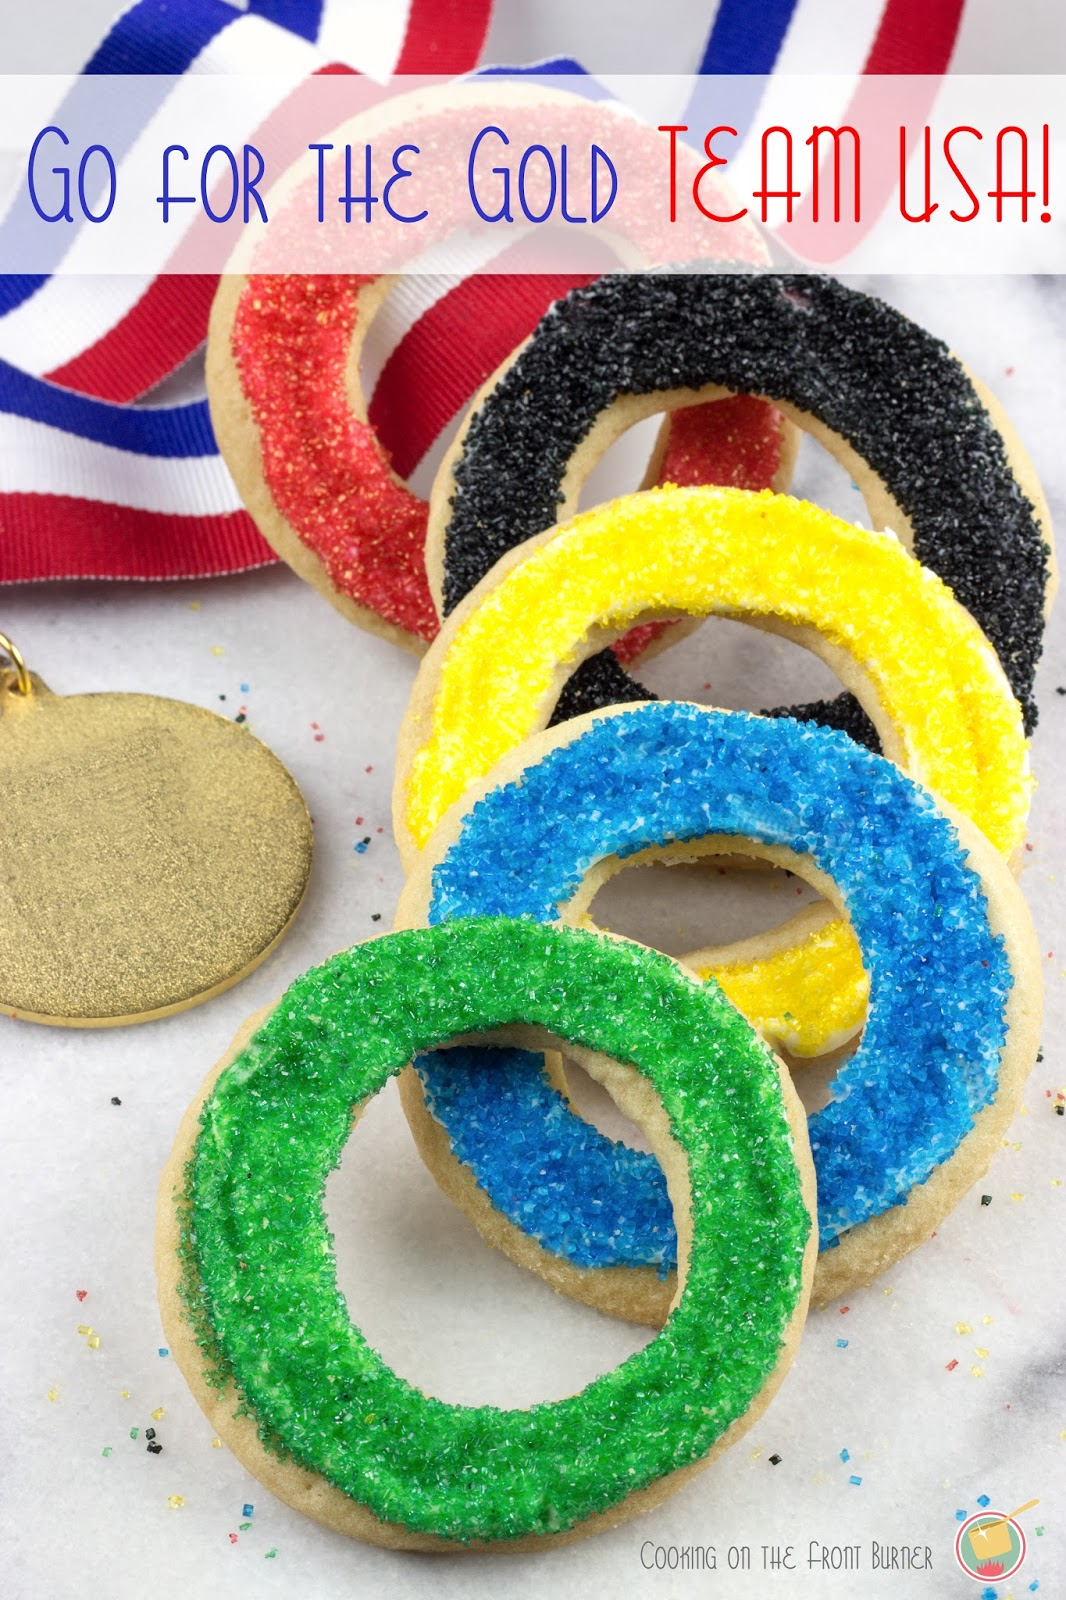 Team USA Olympic Sugar Cookies | Cooking on the Front Burner #olypmiccookies #teamusa #pillsbury